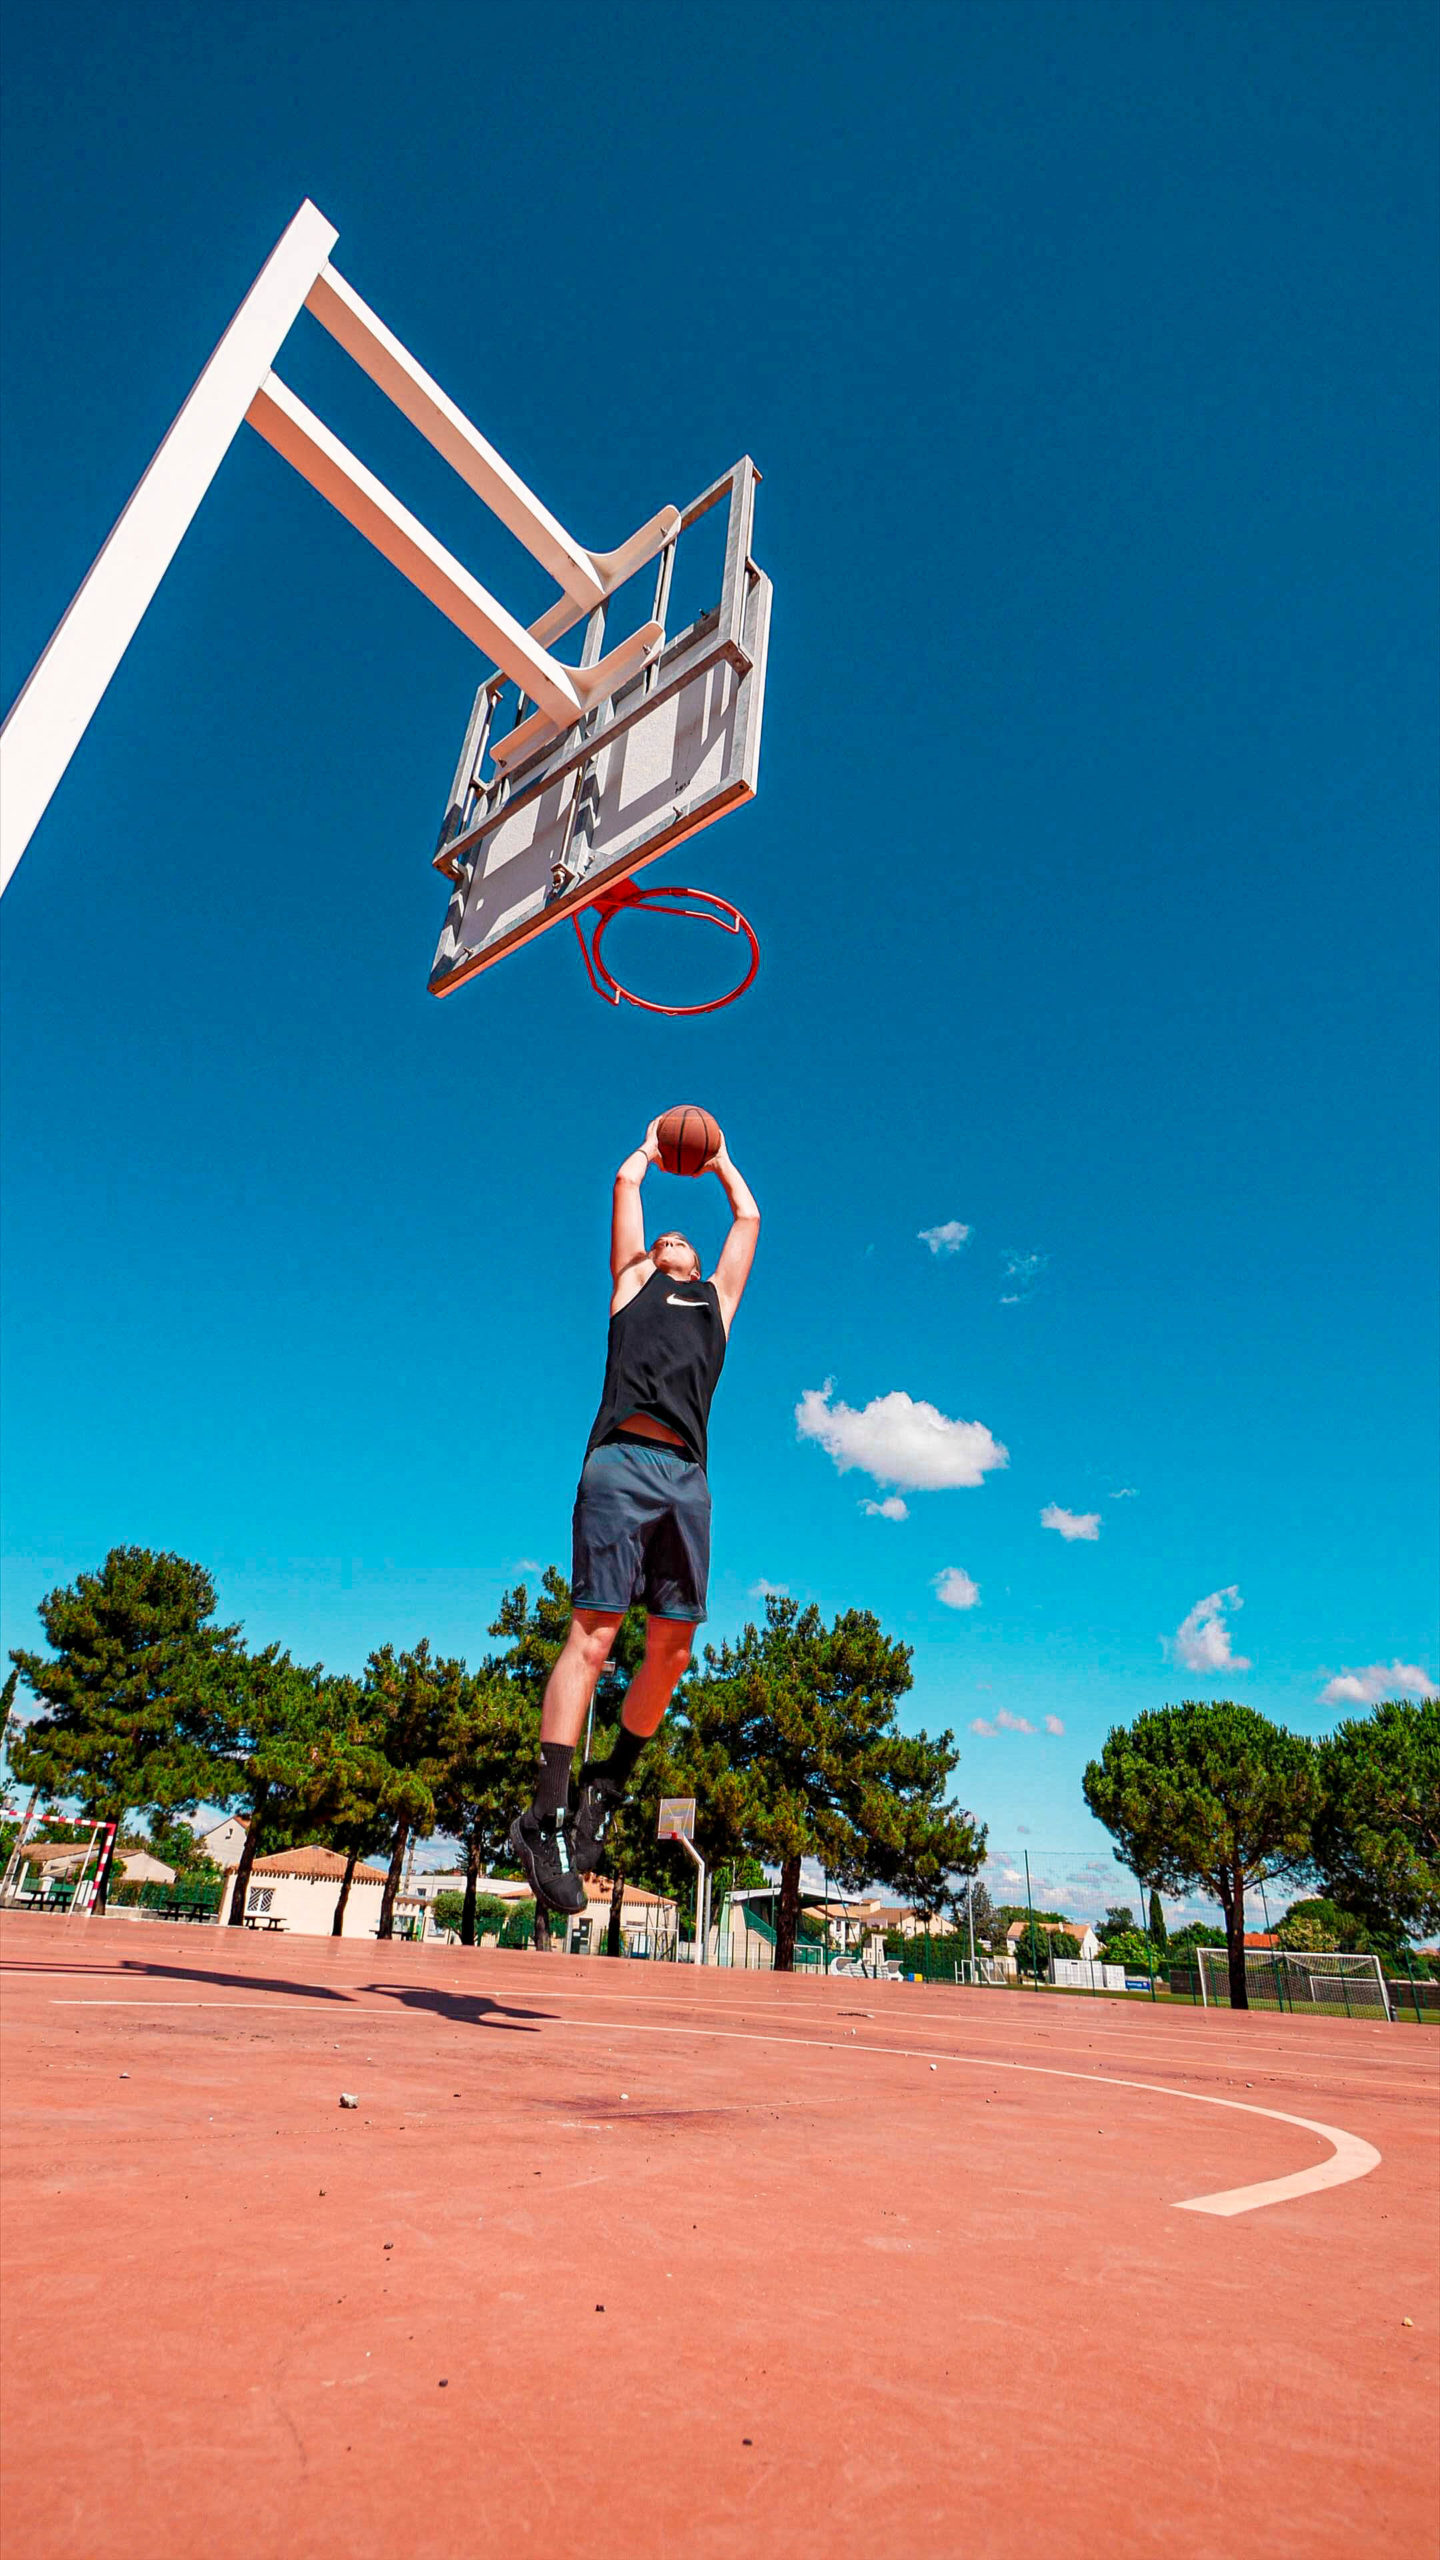 Photograph of a basket player - Nicolas Tauzin